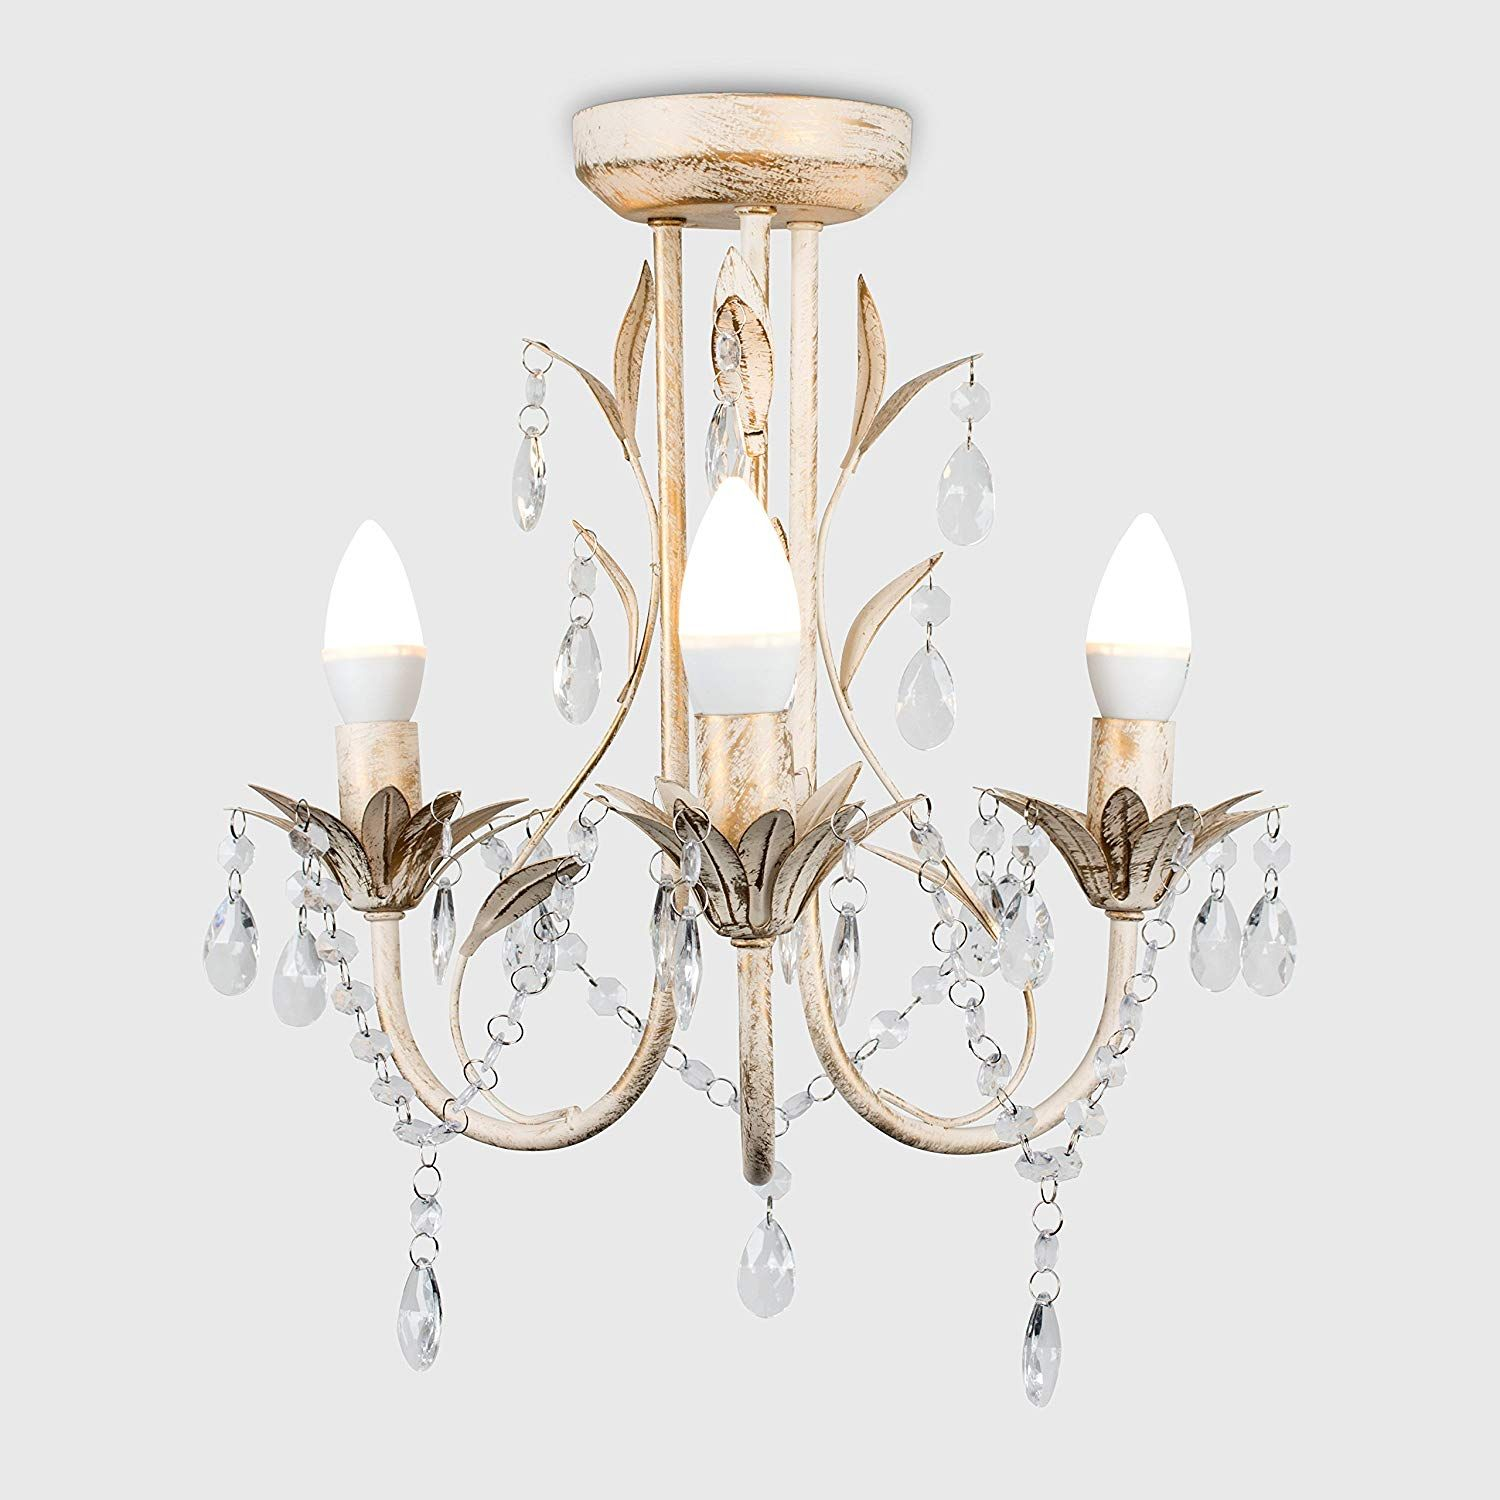 Shabby Chic Chandelier – Give a Royal Touch to Your Interior Design!